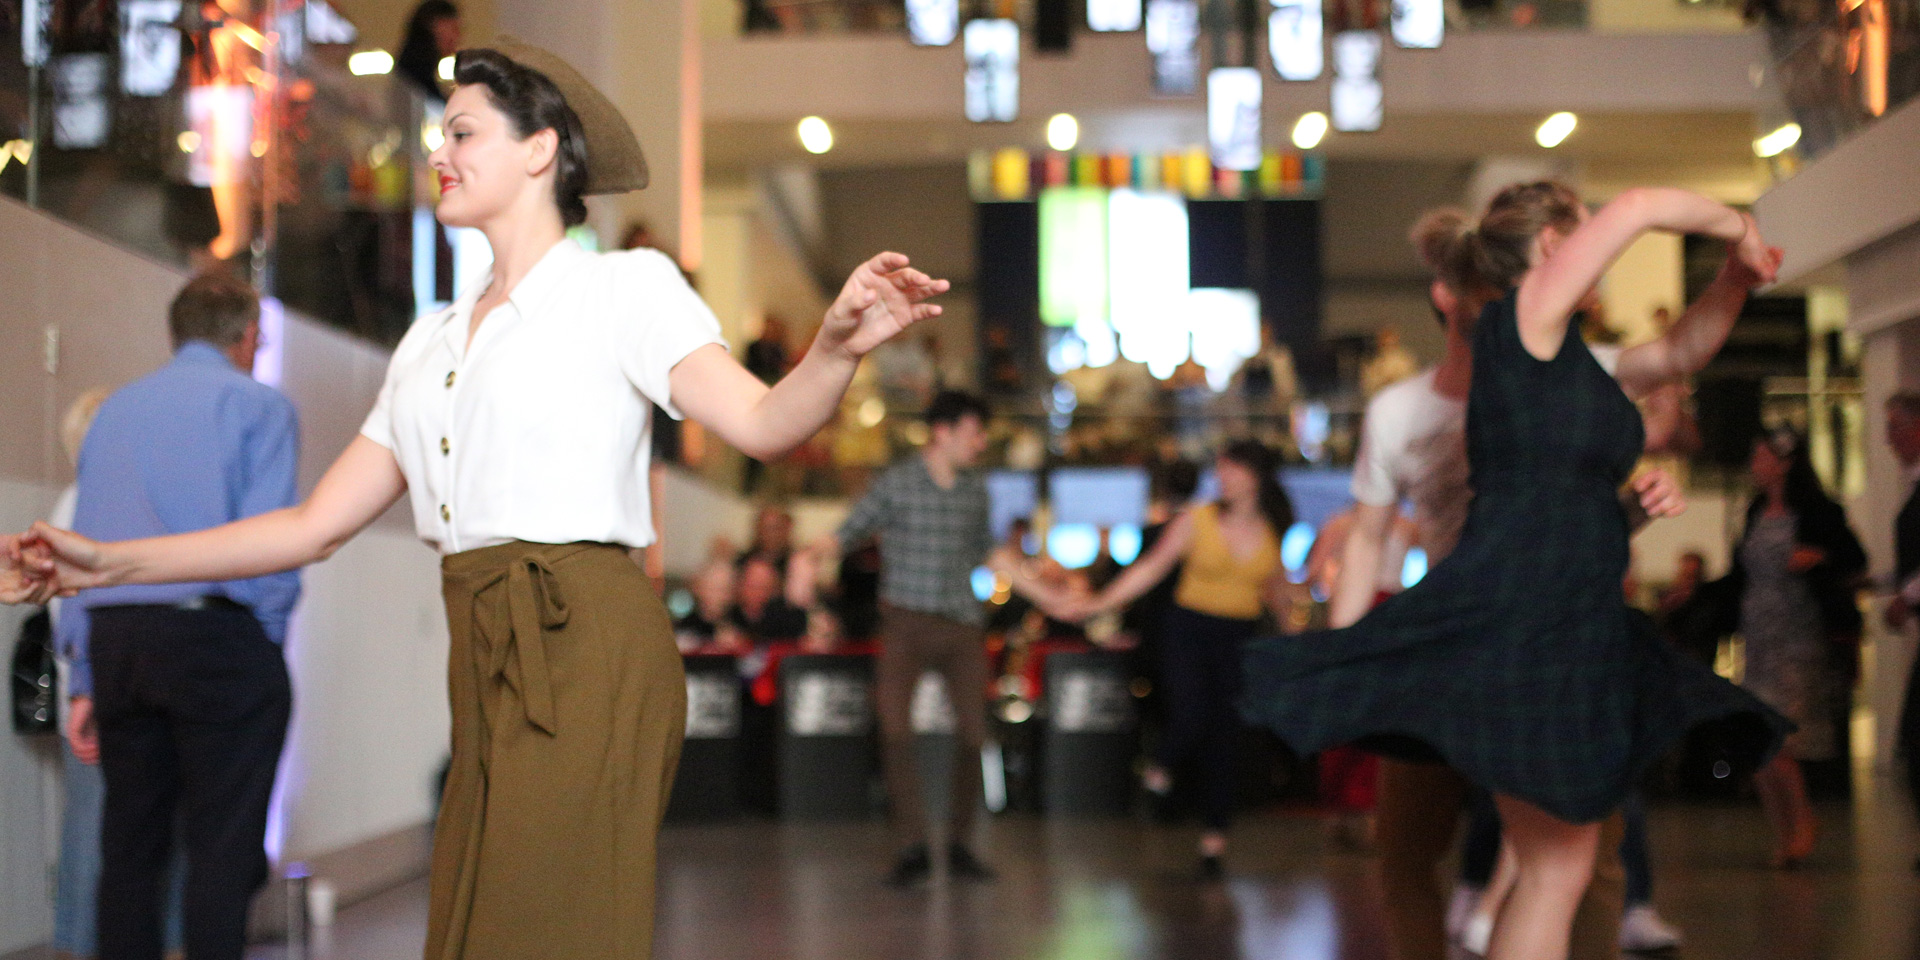 1940s-themed dance night at the National Army Museum